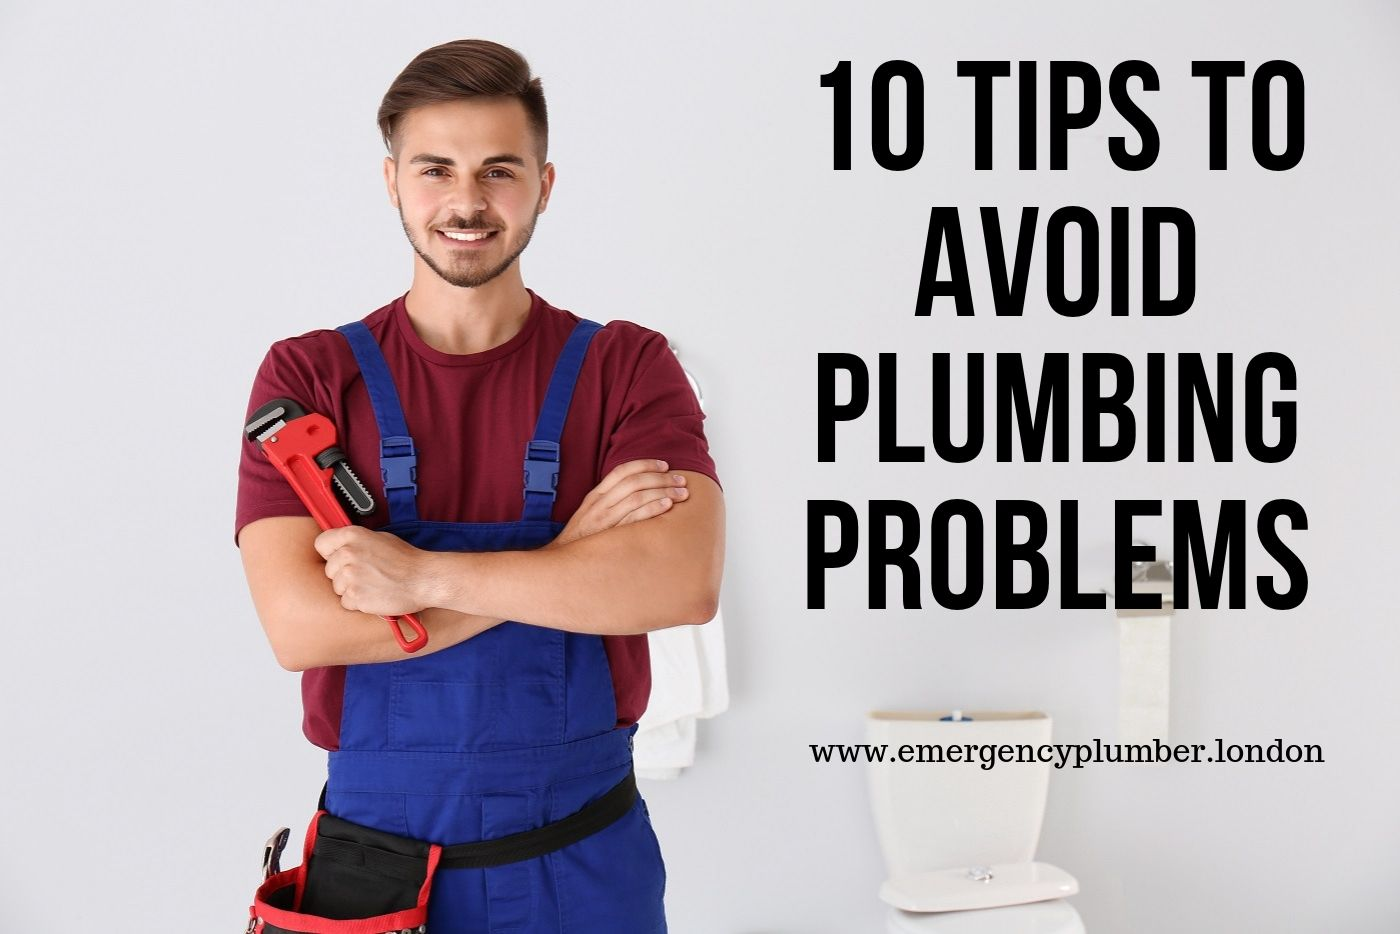 10 Tips To Avoid Plumbing Problems - Emergency Plumber London